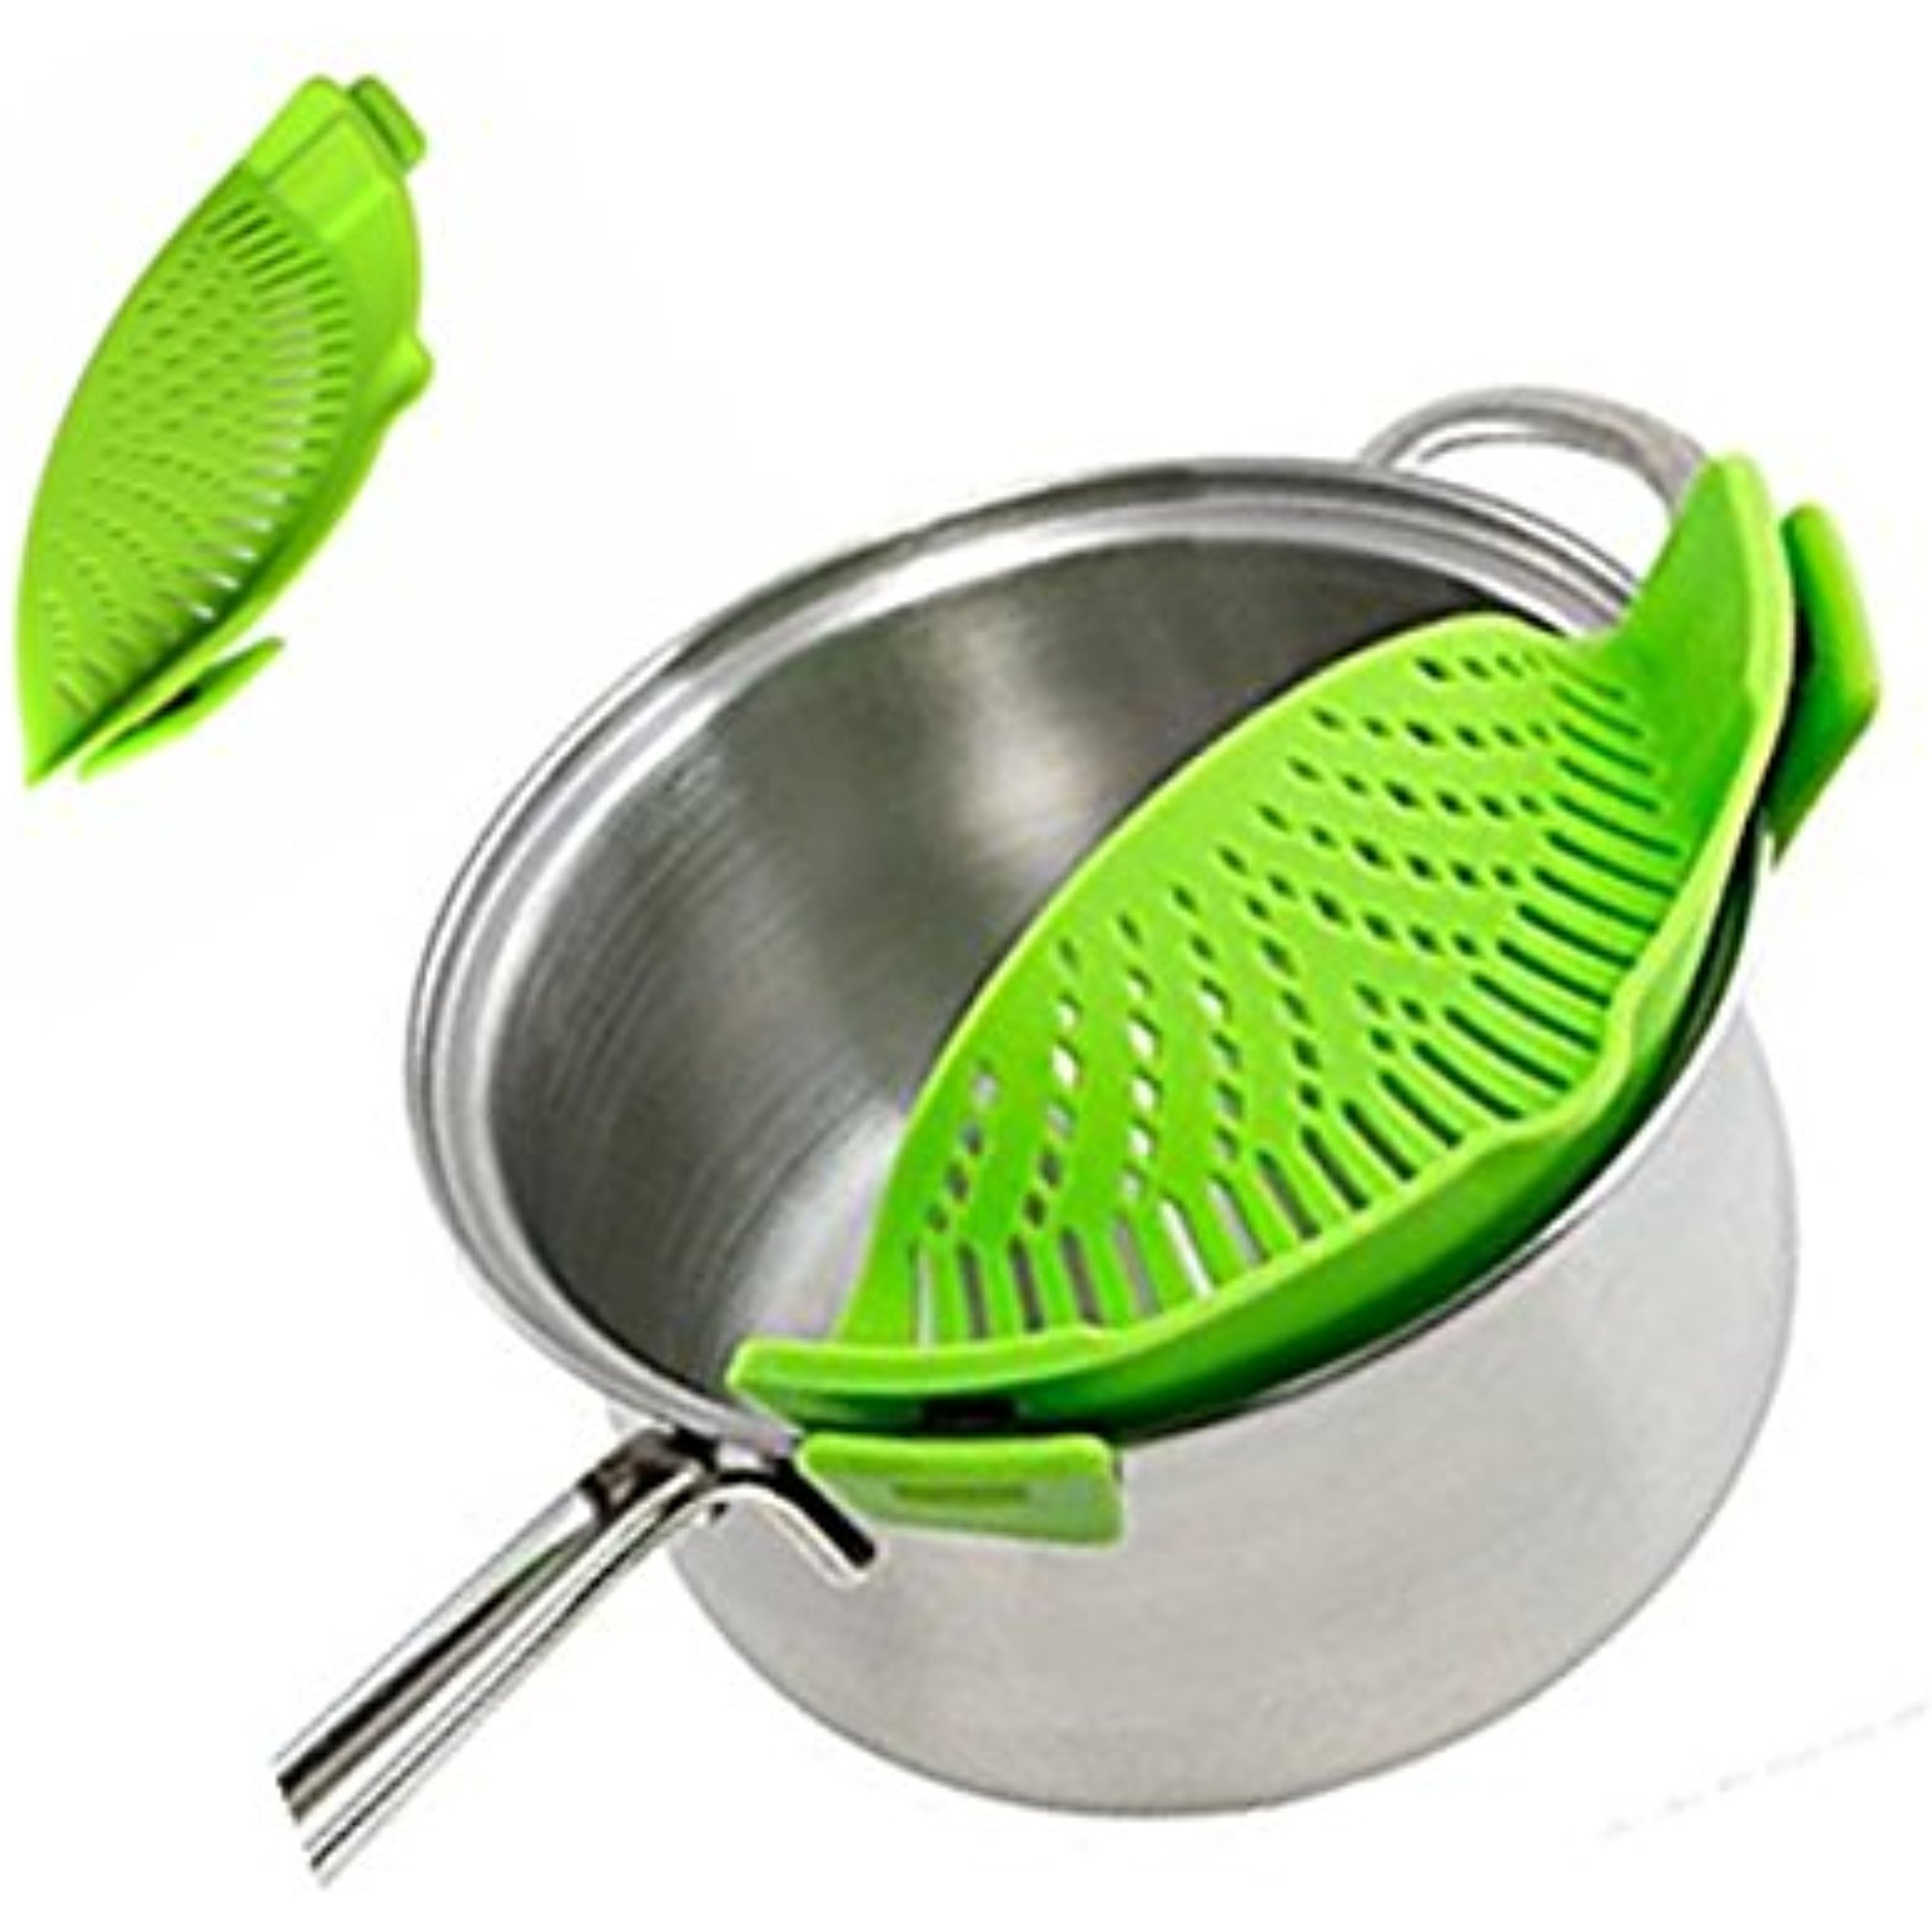 iNeibo Silicone Strainer-Clip on Pan Strainer for Draining Pasta, Grease, Vegetable, Fruit, Rice